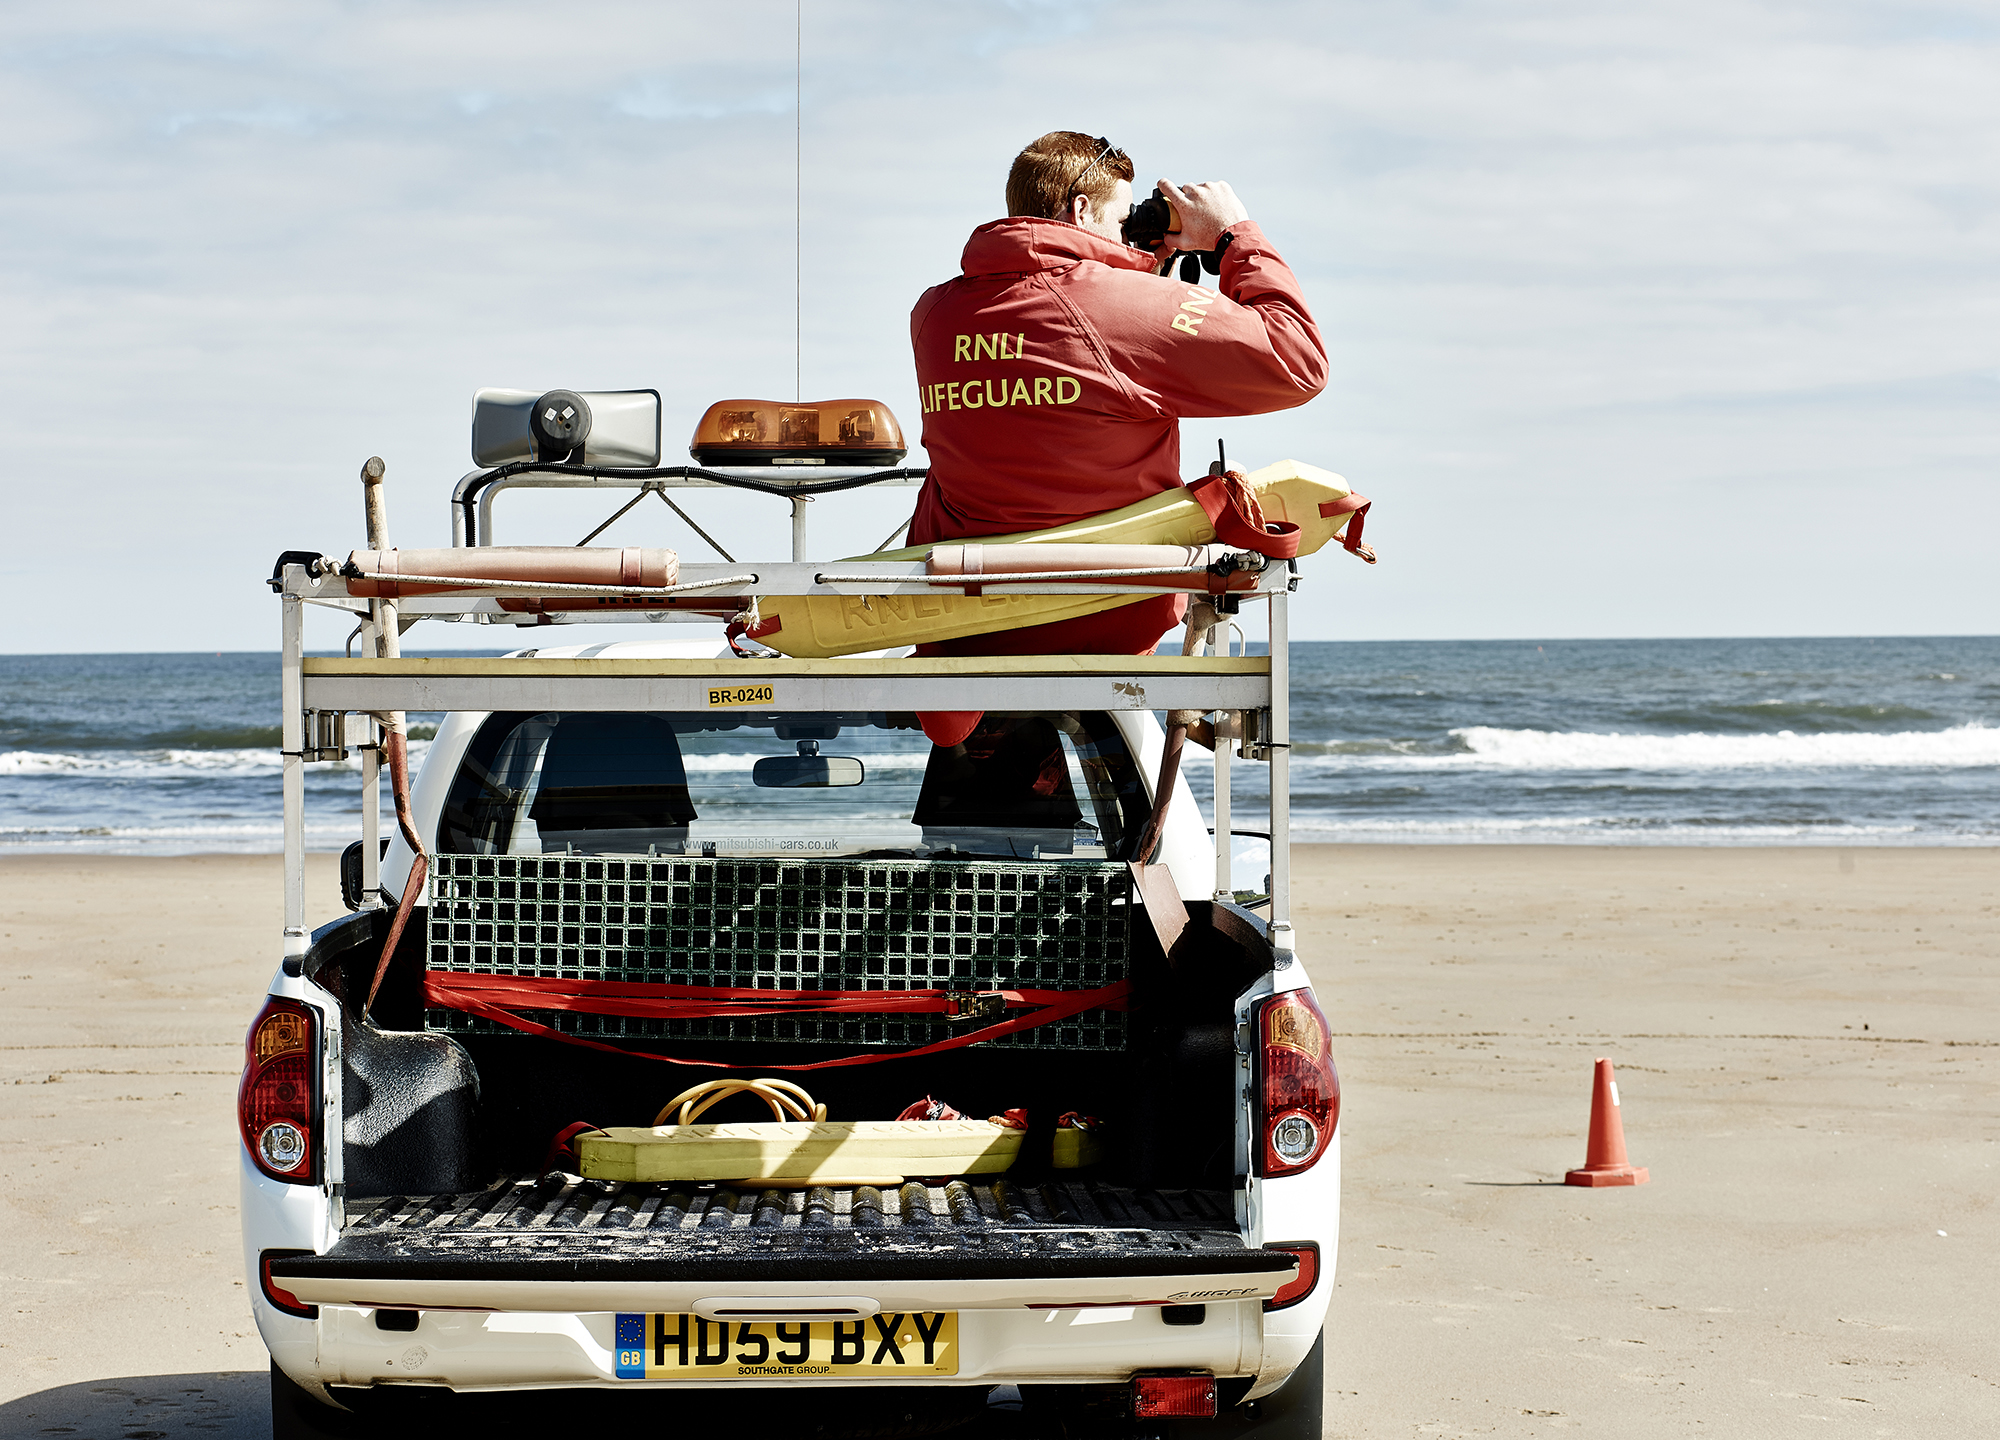 John Donoghue - lookout on beach lifeguards